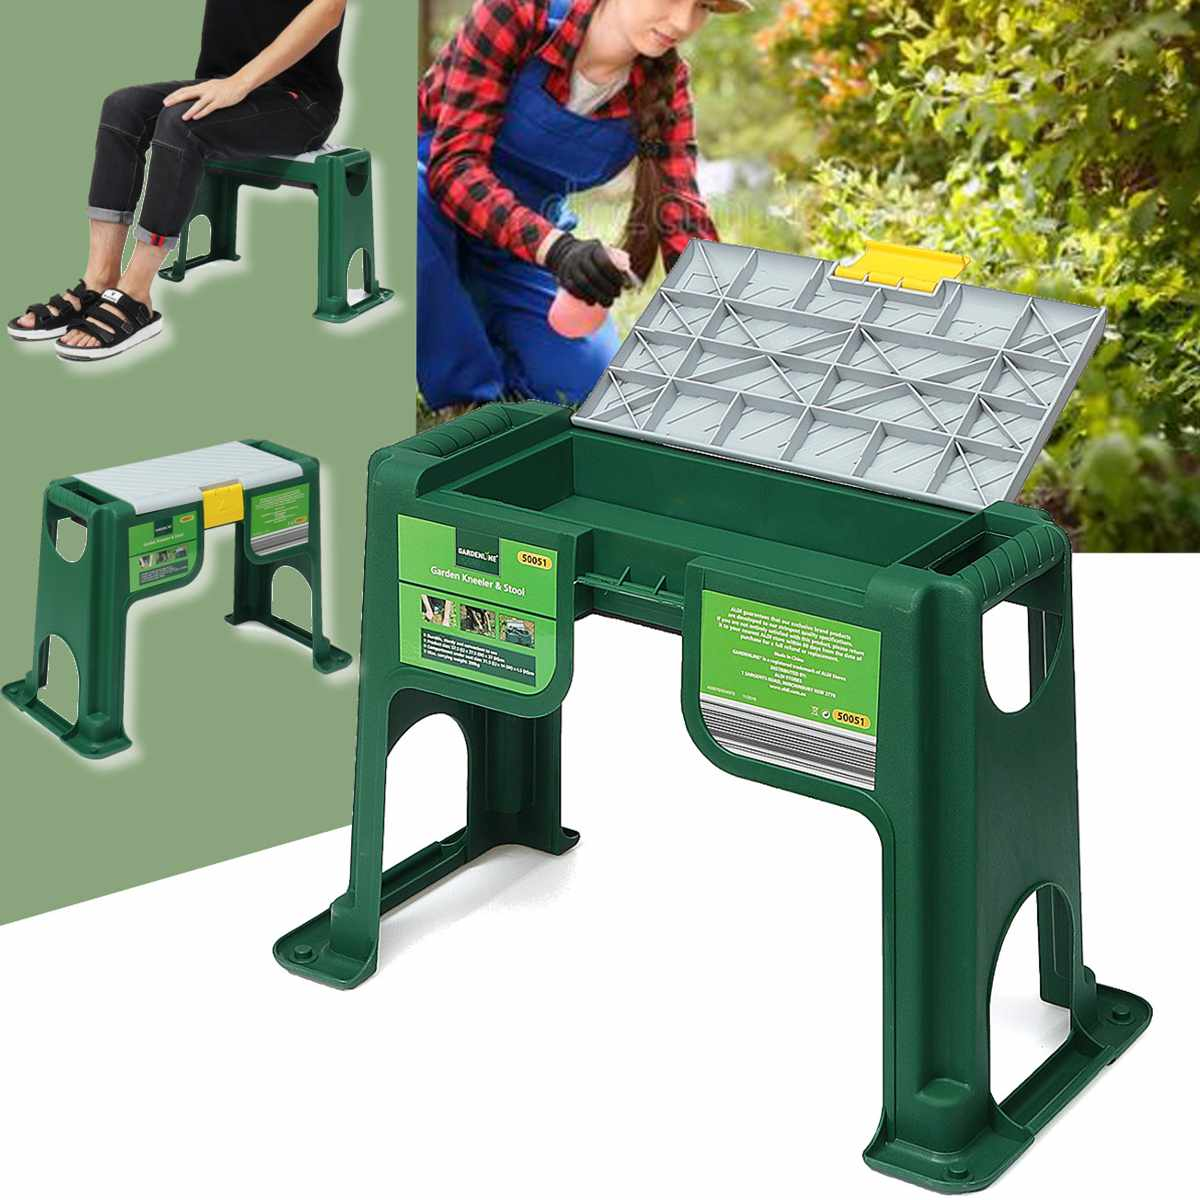 Garden Kneeler And Seat With Storage Bin Stable Plastic Lightweight Garden Chairs Thicken Step Portable Garden Stools Green Grey